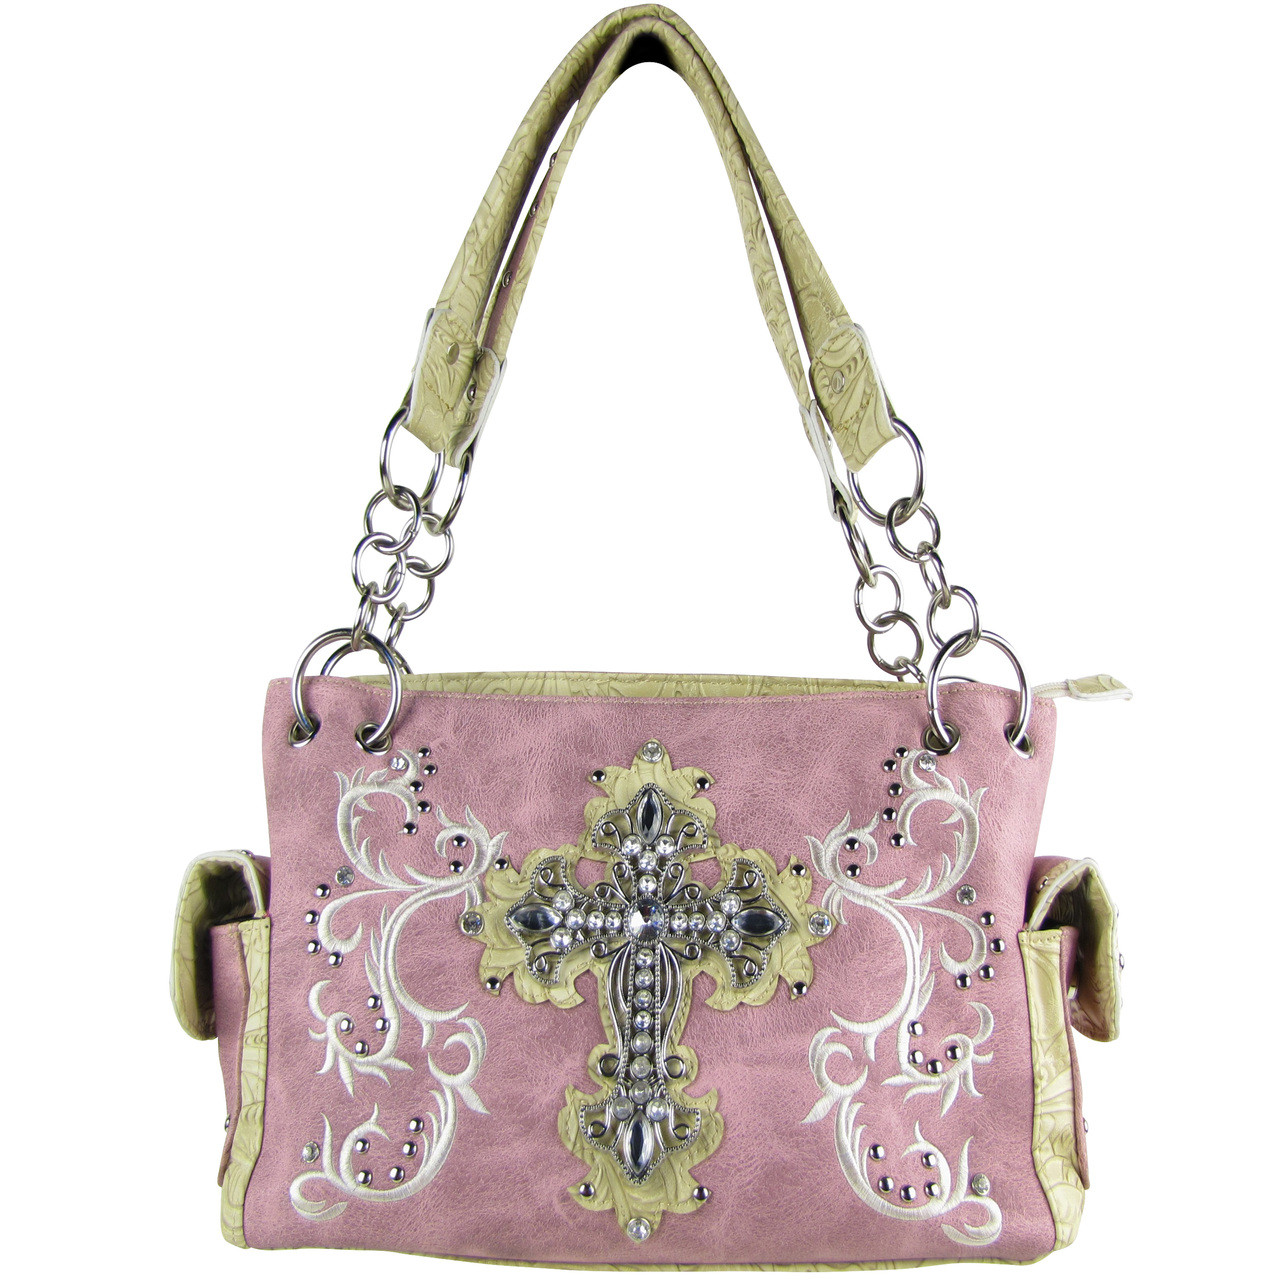 PINK RHINESTONE CROSS LOOK SHOULDER HANDBAG HB1-64LCRPNK